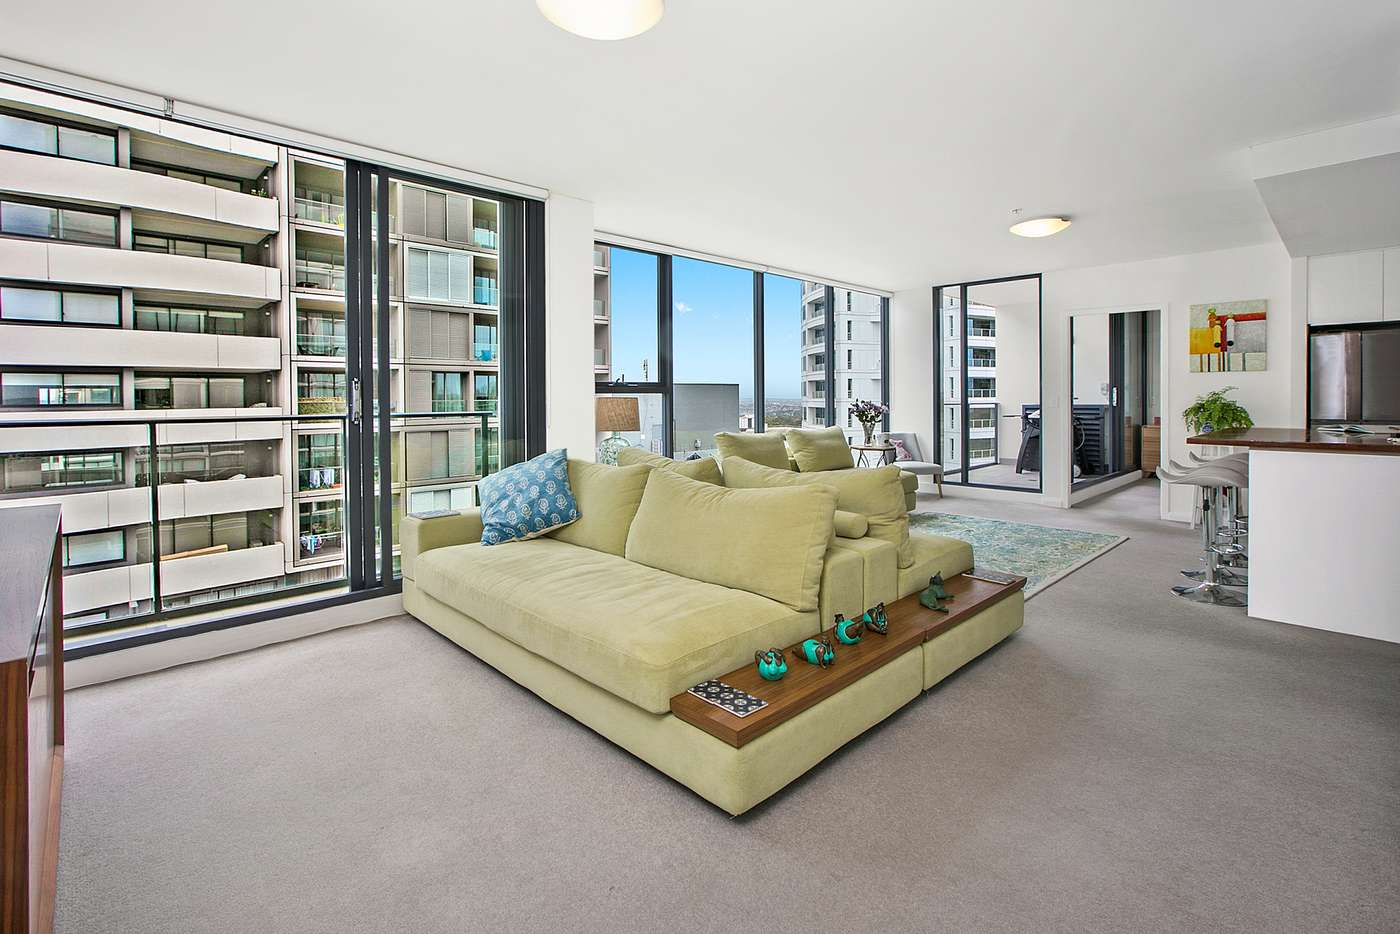 Main view of Homely apartment listing, 808/38 Atchison Street, St Leonards NSW 2065